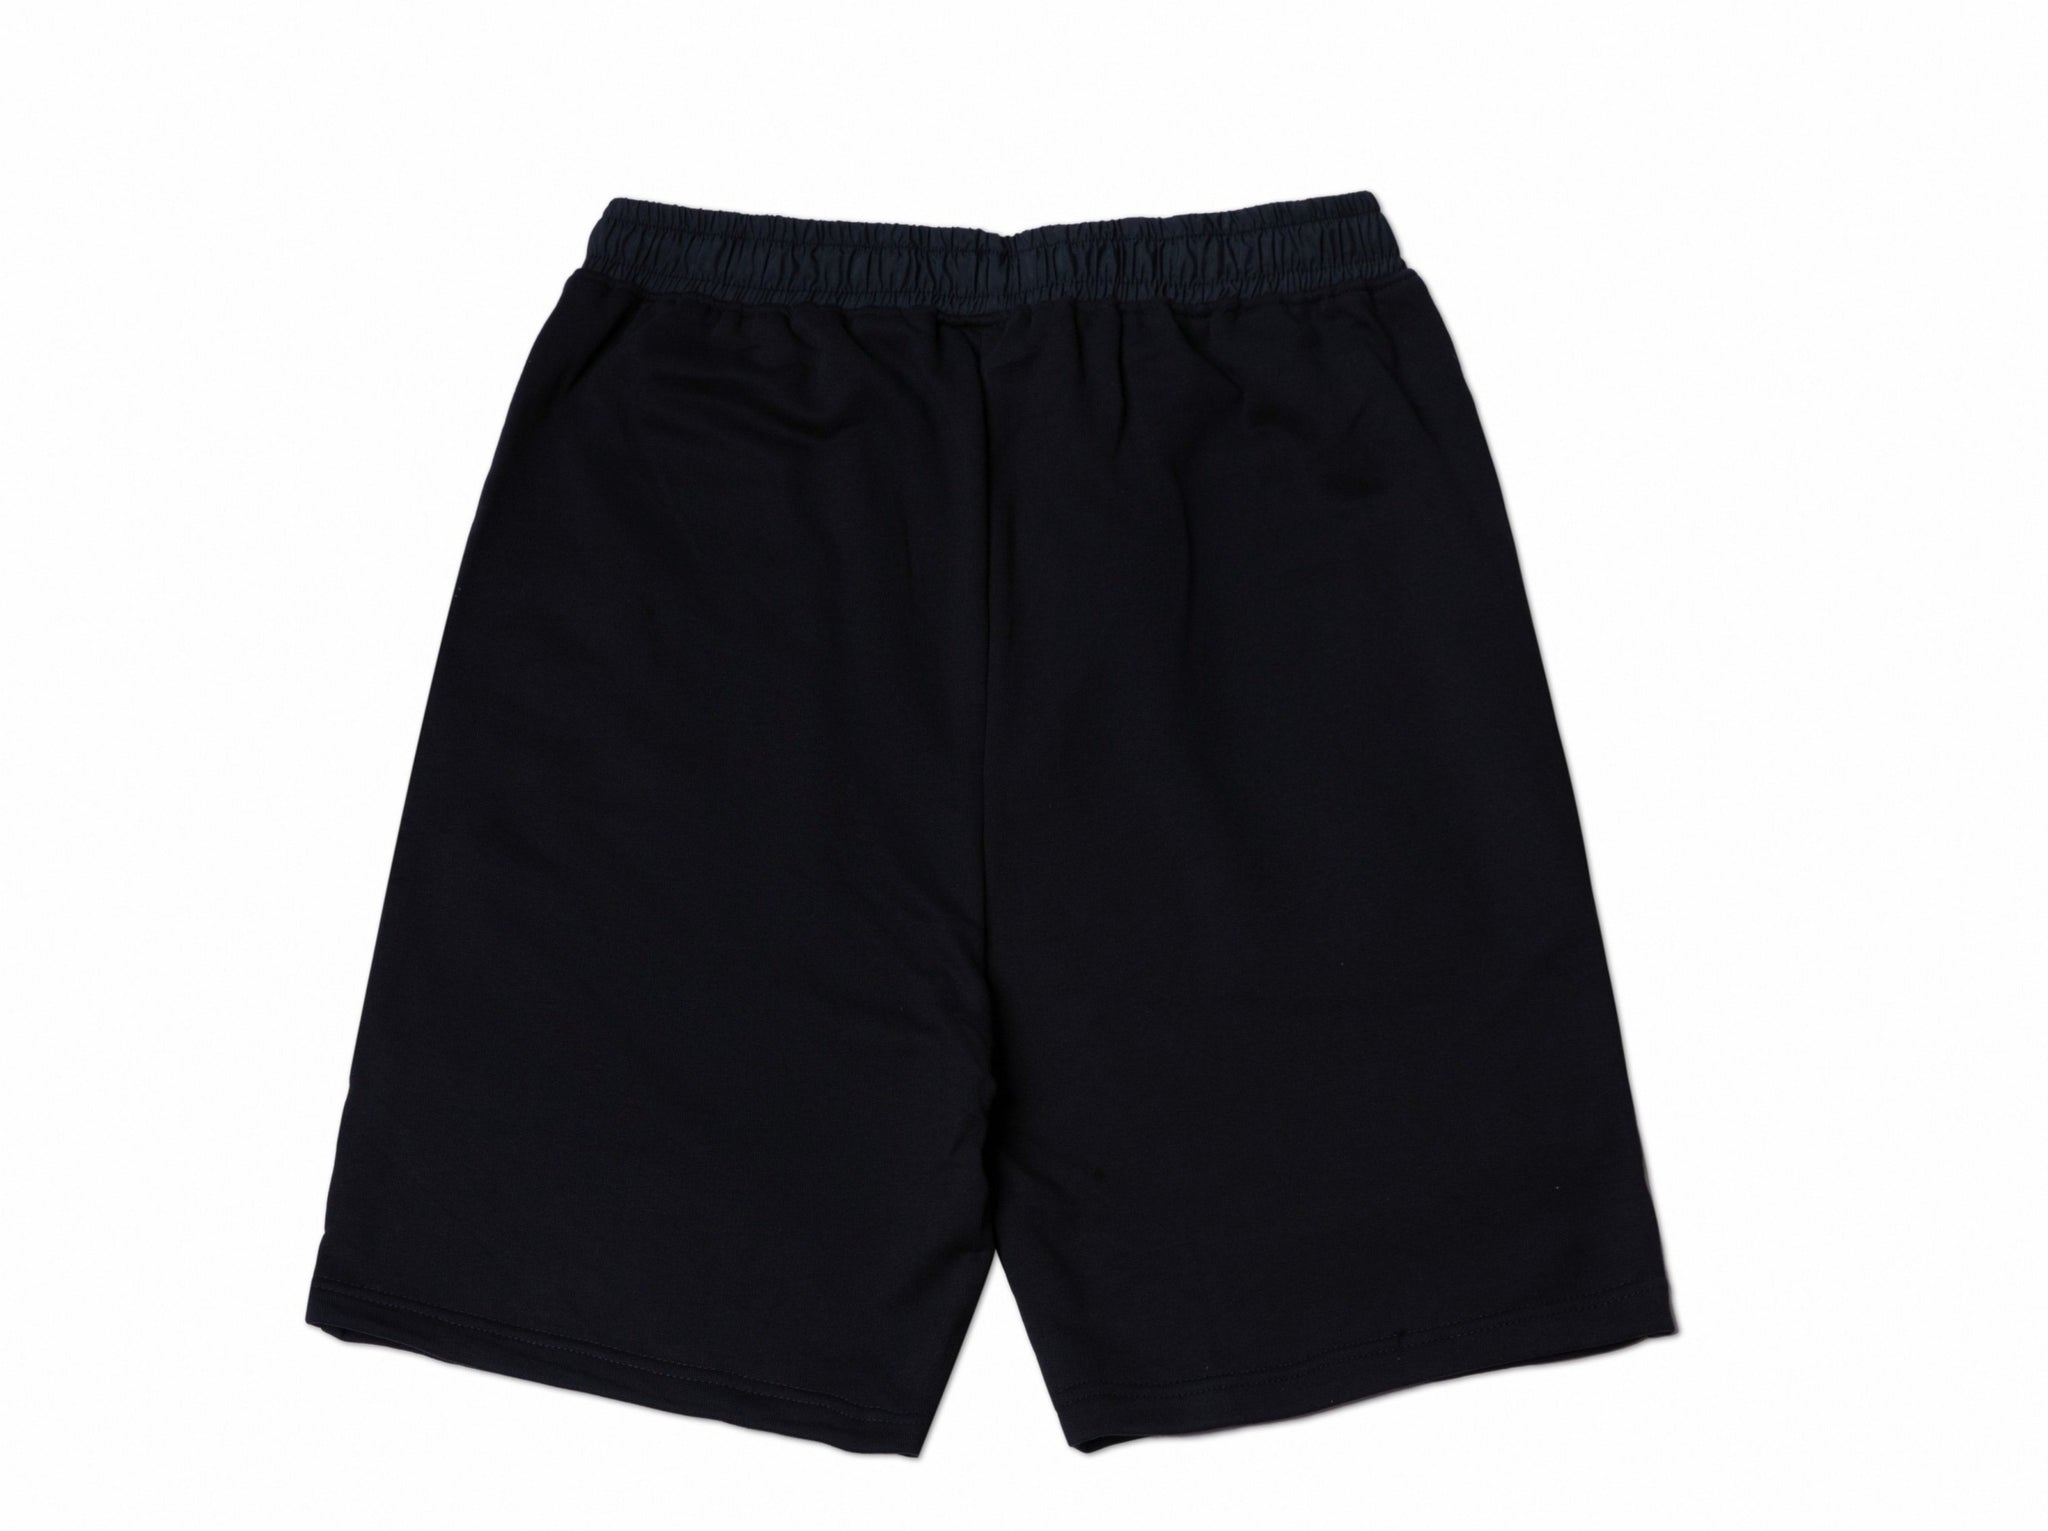 BASIC SHORT IN BLACK